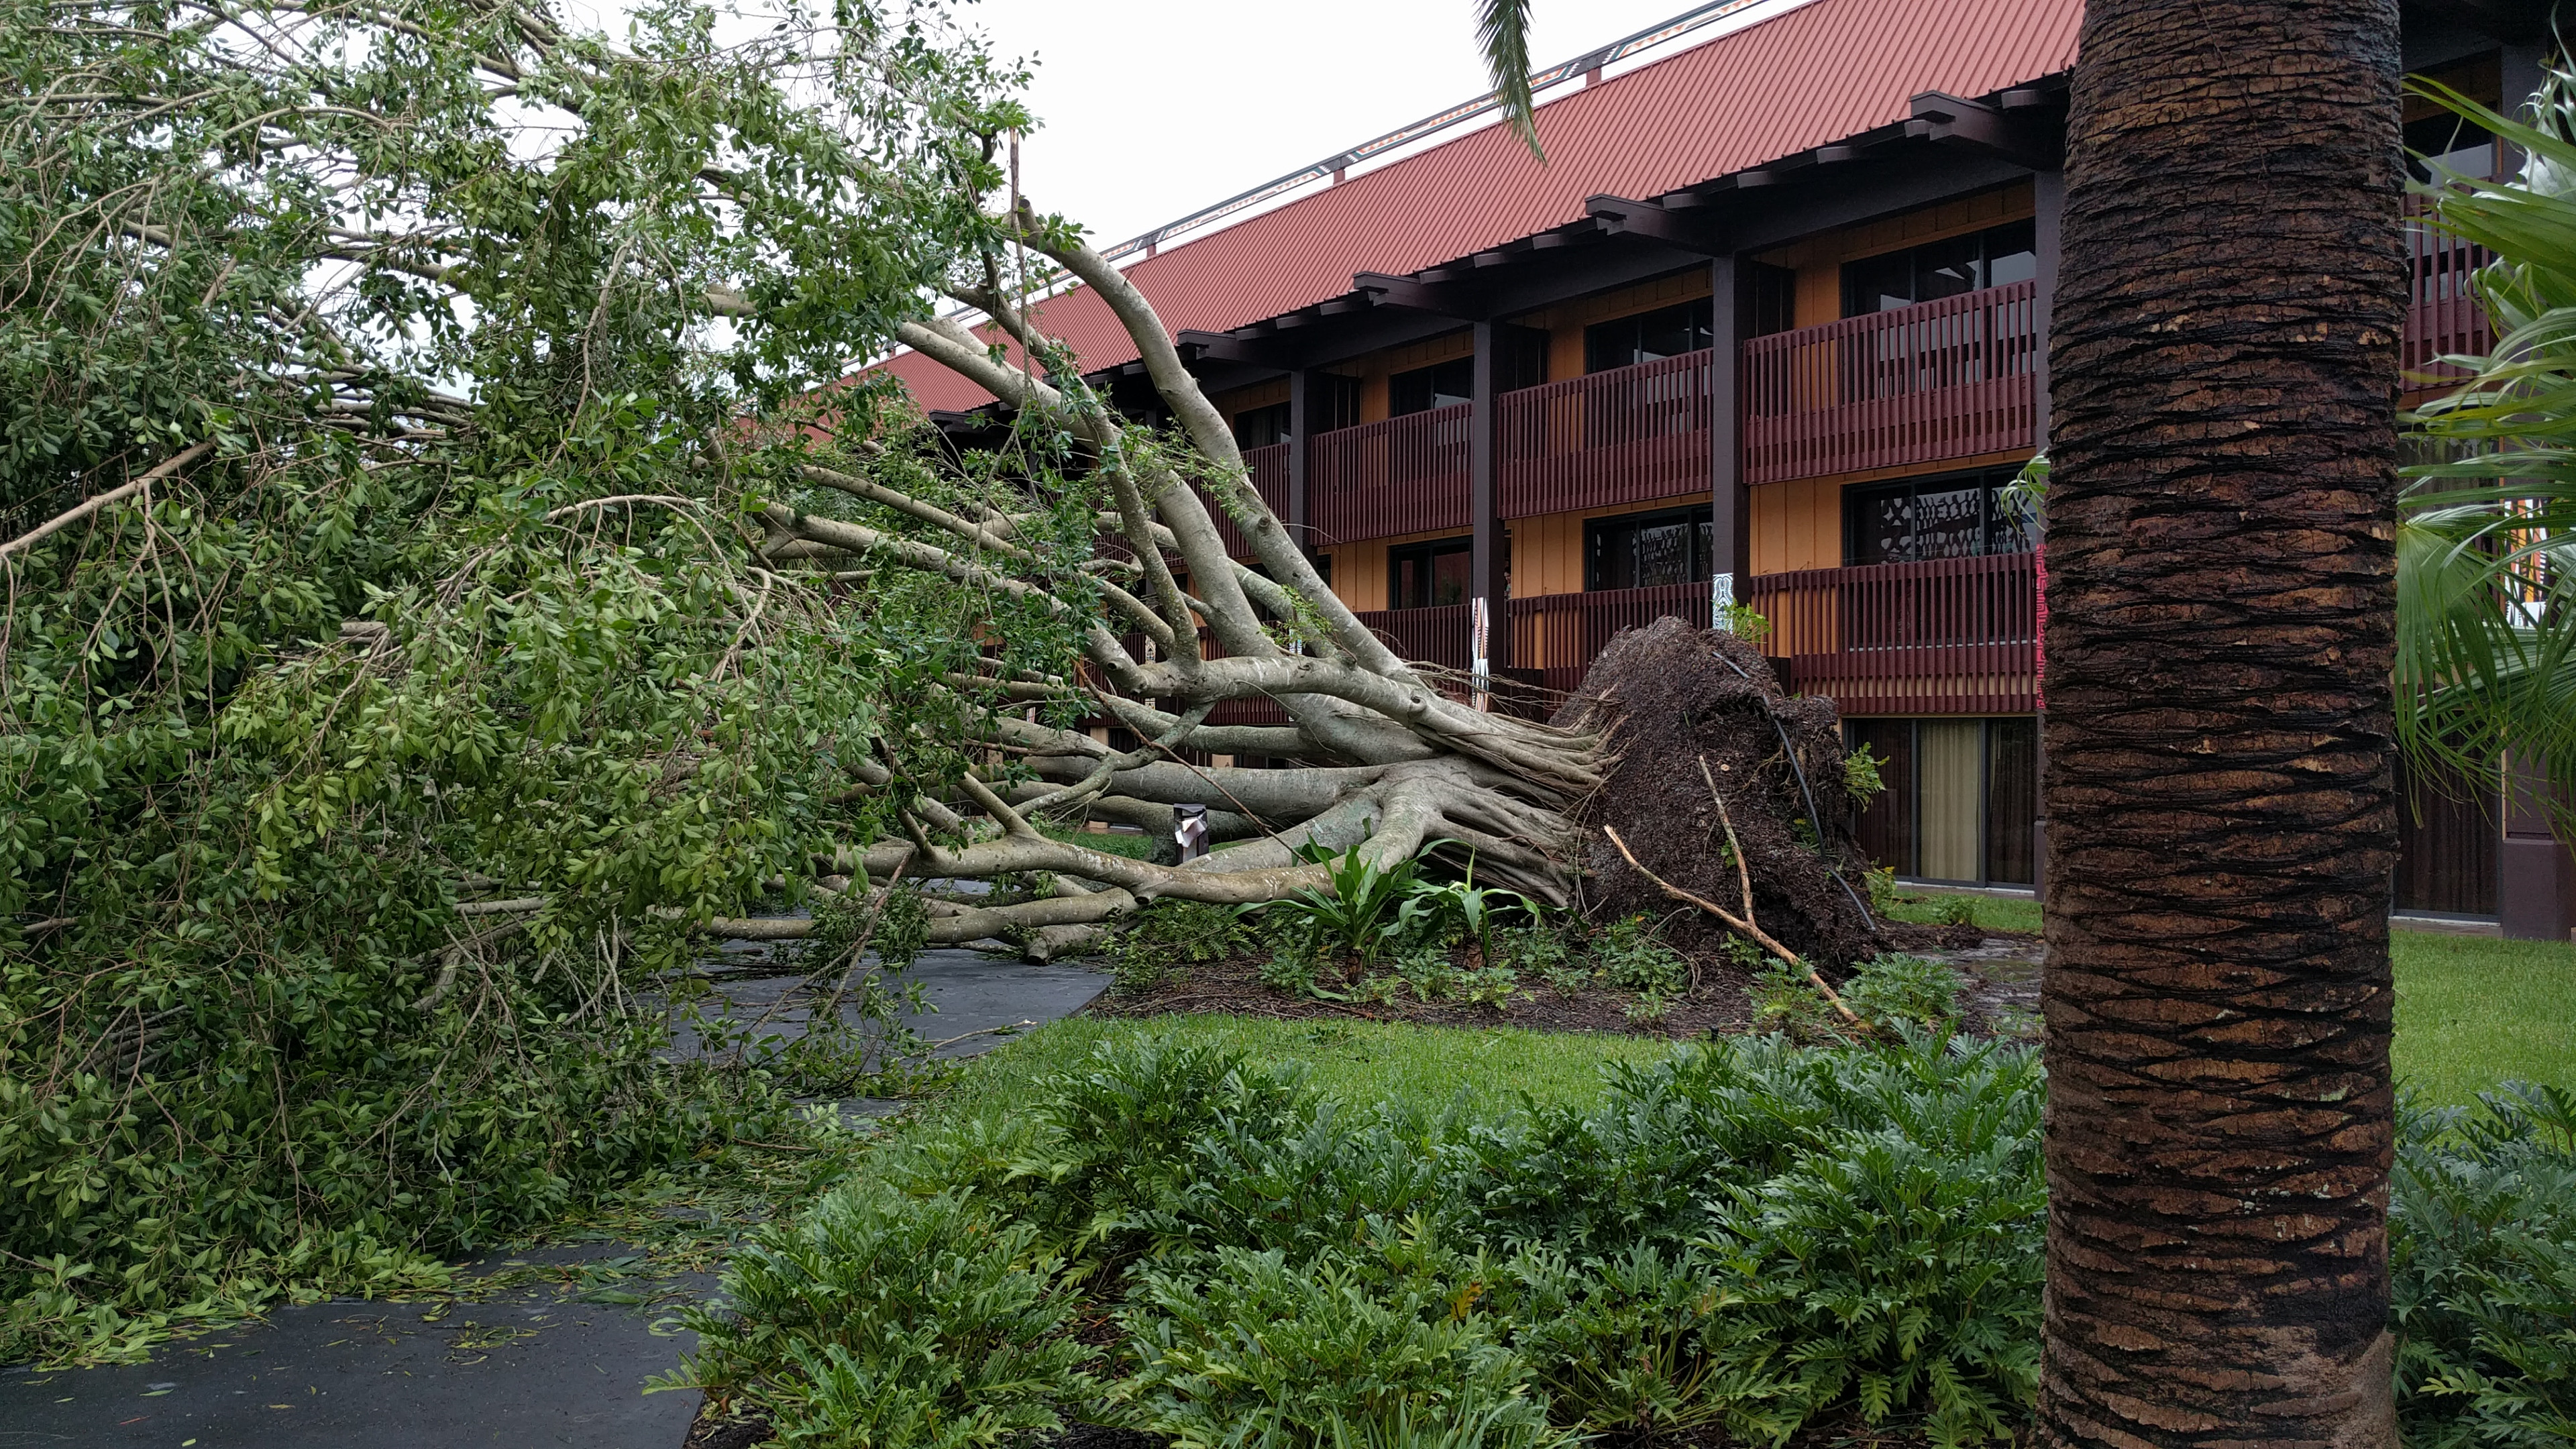 Hurricane Irma damage at Disney's Polynesian Resort